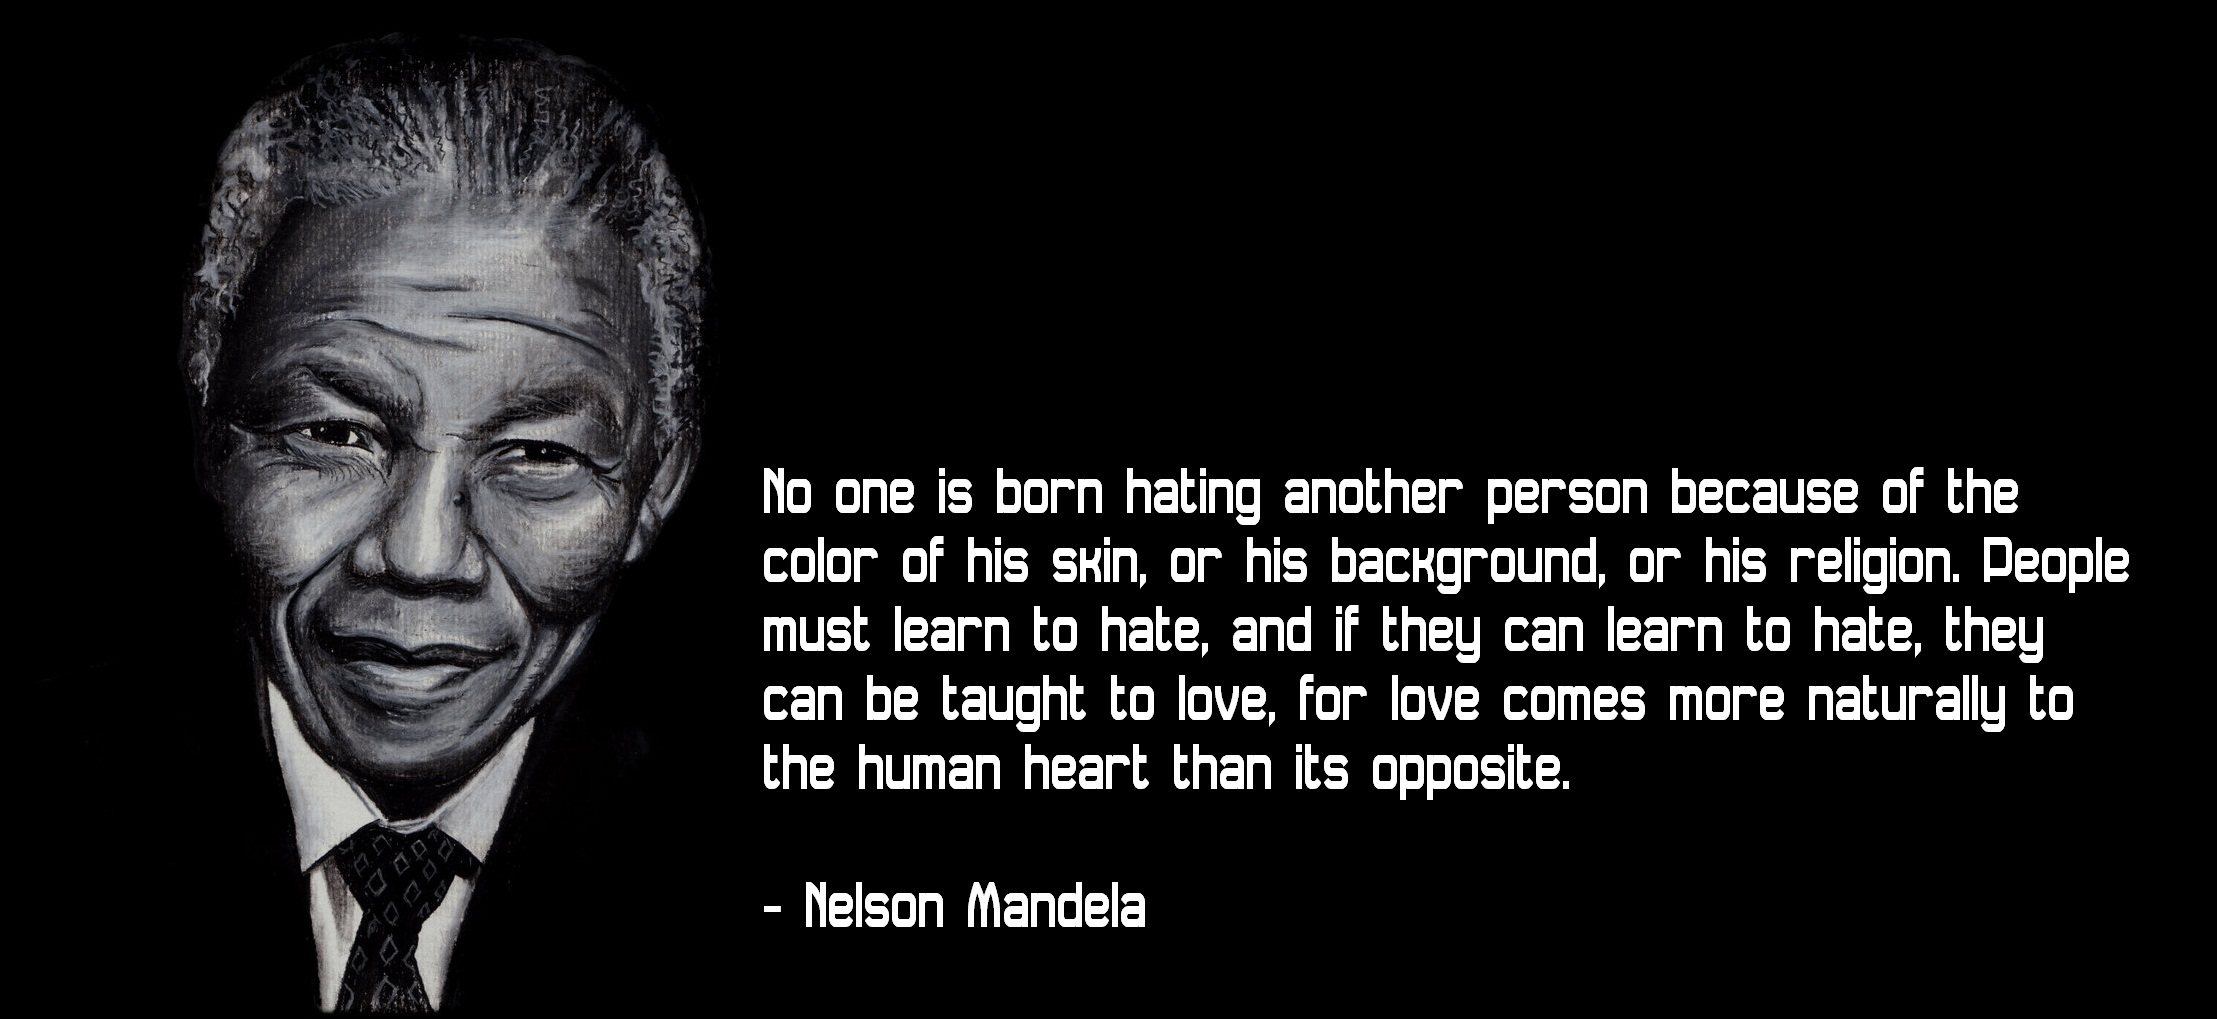 Quotes About Racism Deep Thought Provoking Quotes About Racism Picture